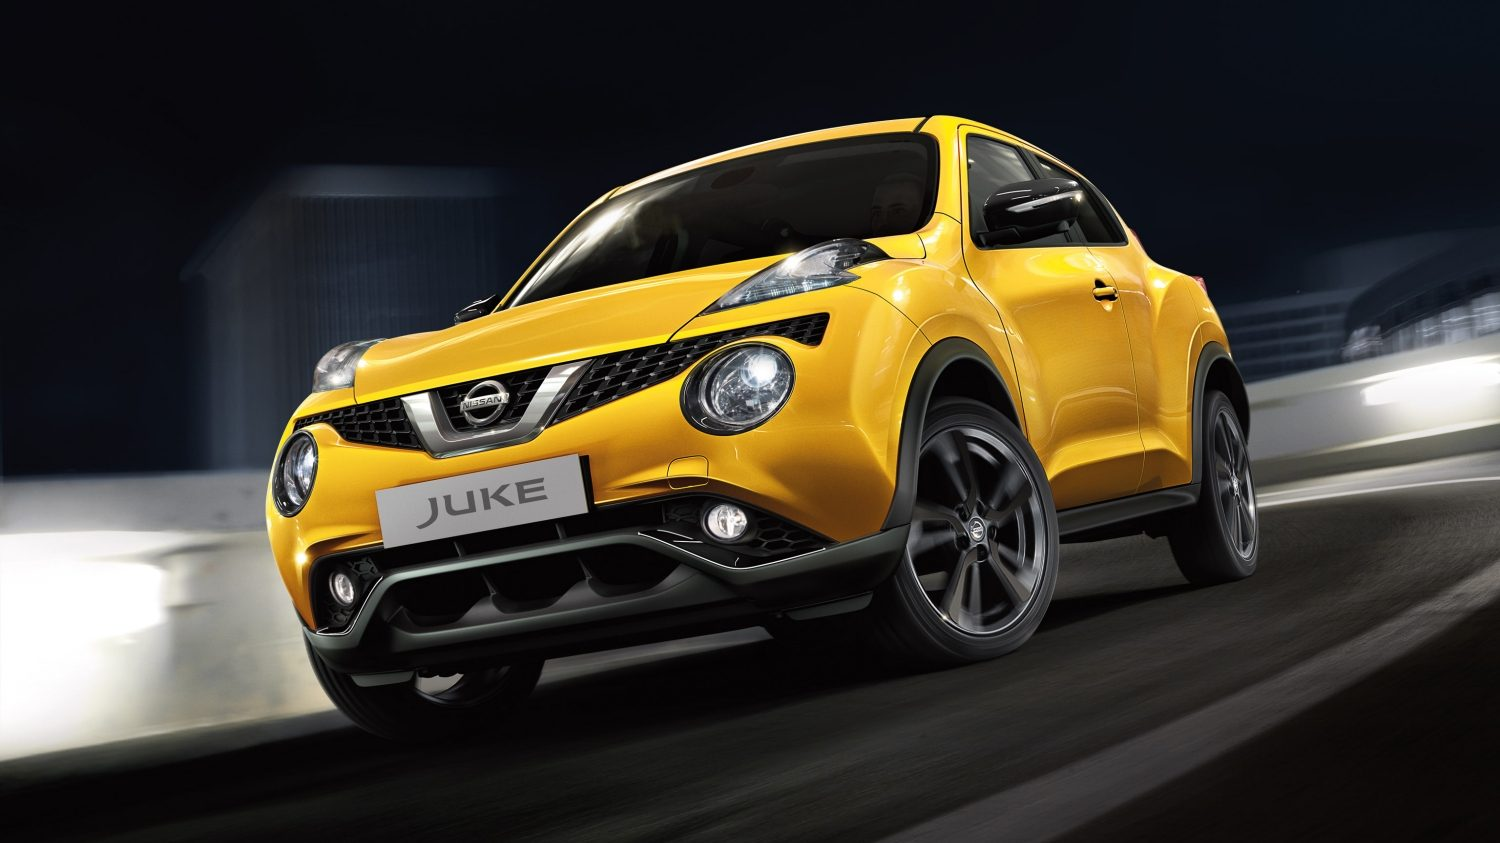 Nissan Juke | Small SUV on the road